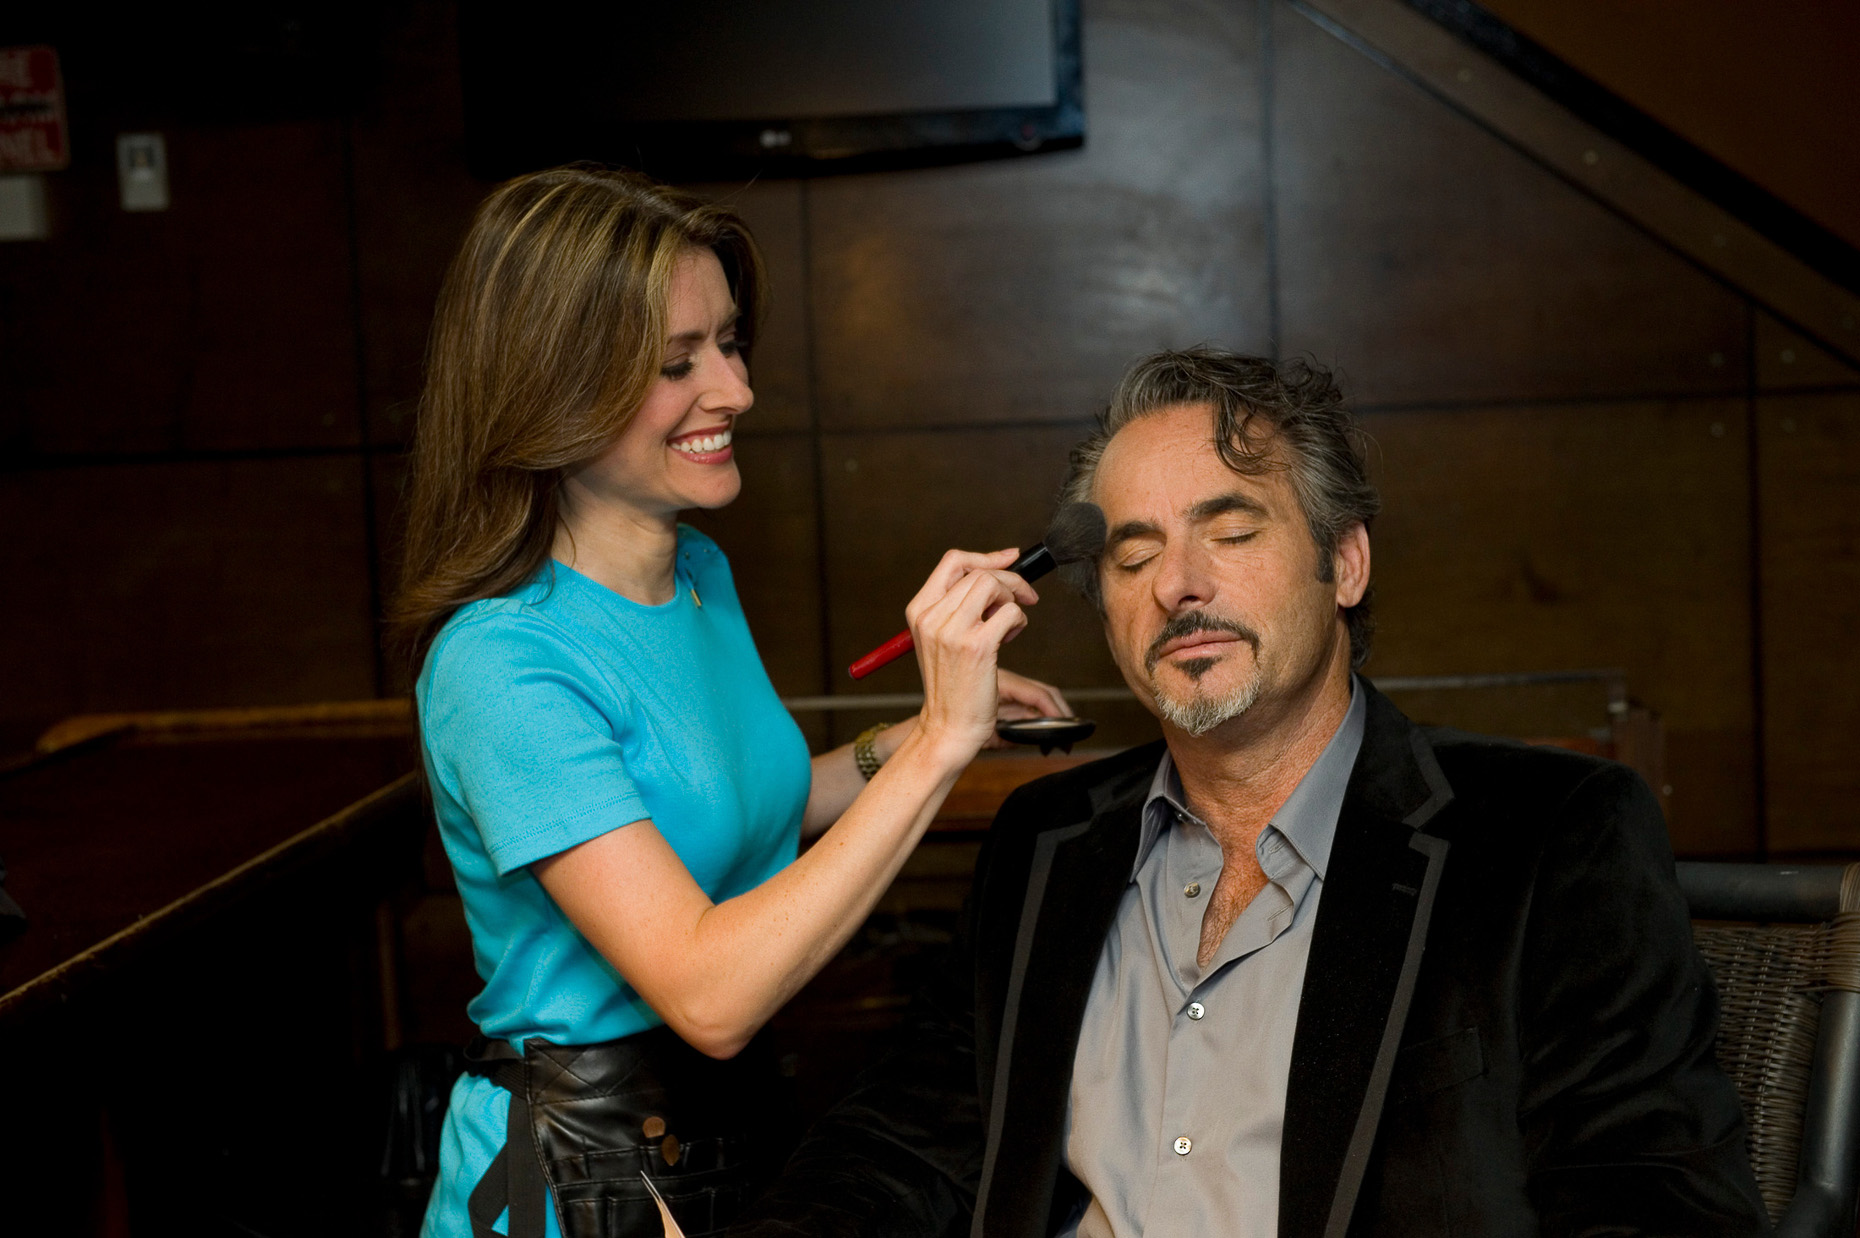 david_feherty_atlanta_georgia_makeup_artist_golf_channel_male_grooming